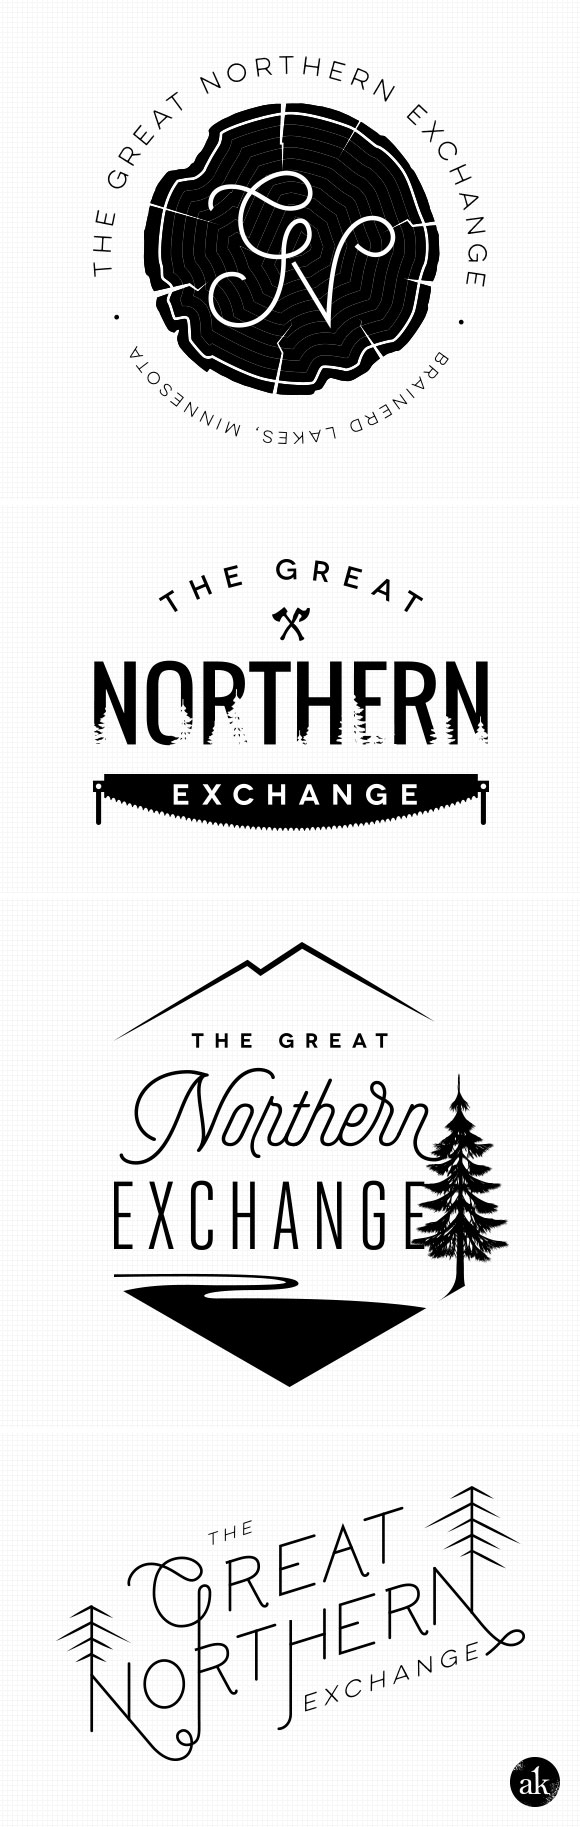 Custom logo design for The Great Northern Exchange by Akula Kreative